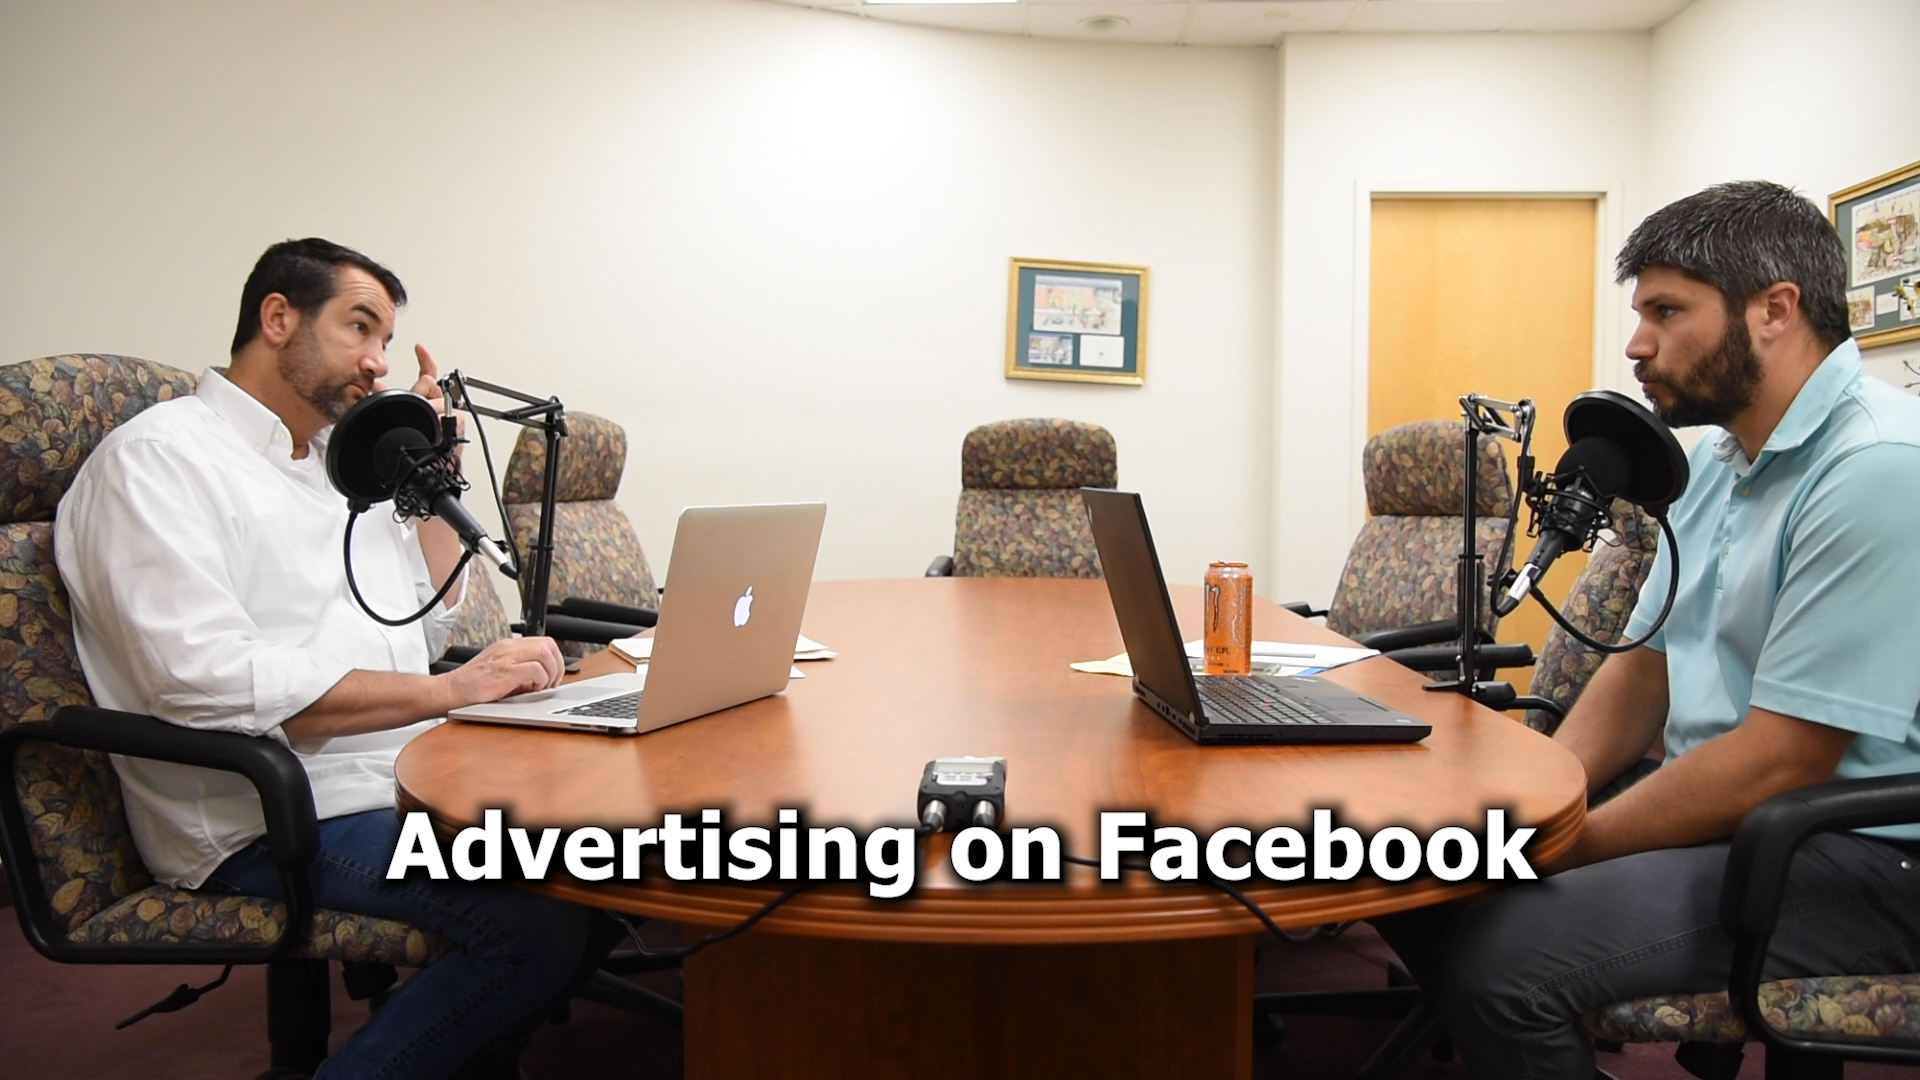 Making the Most Out of Your Facebook Ads - The Messengers